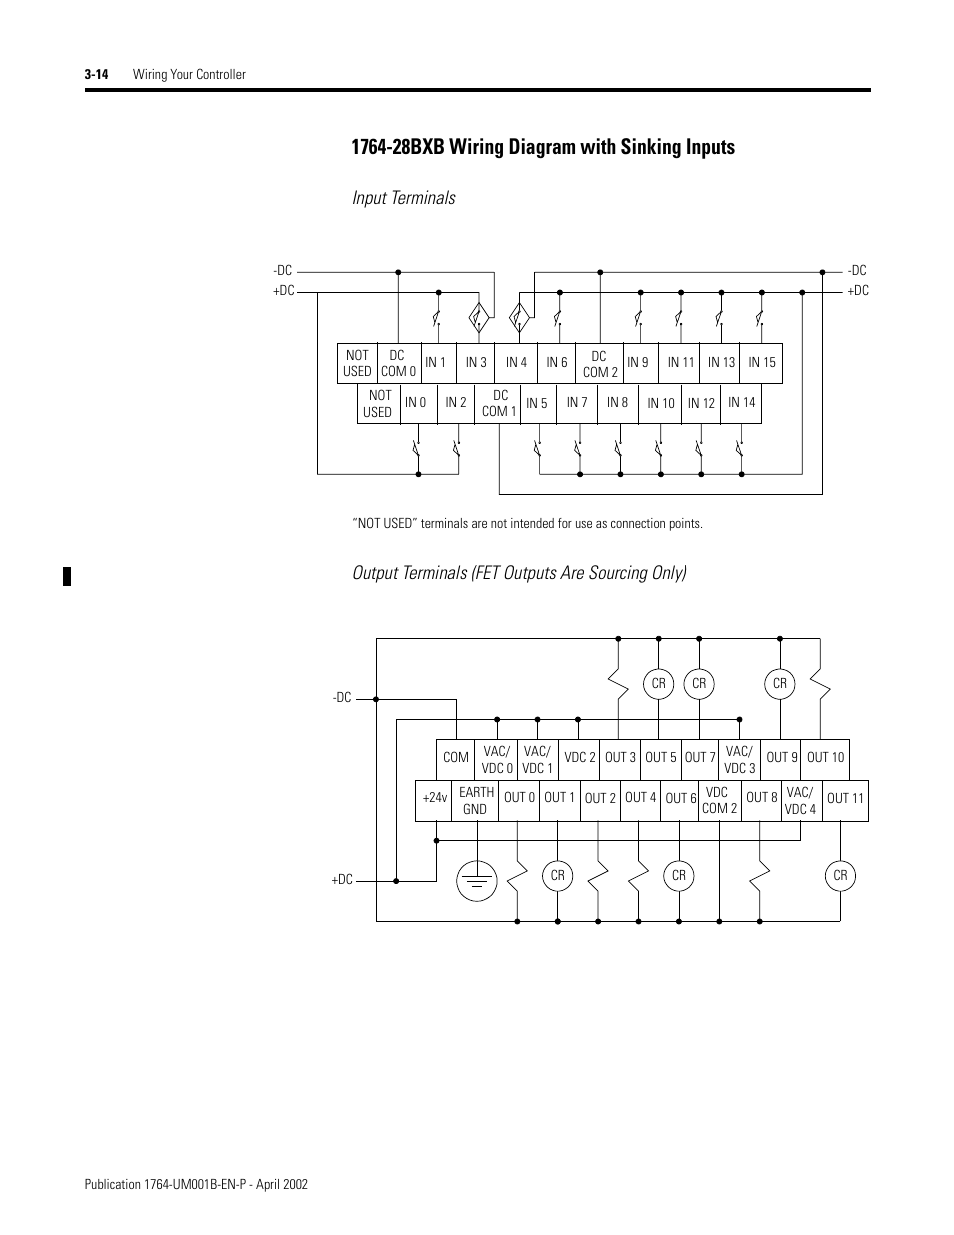 Micrologix 1500 Wiring Diagram Posts 1100 1764 28bxb With Sinking Inputs 14 Rockwell